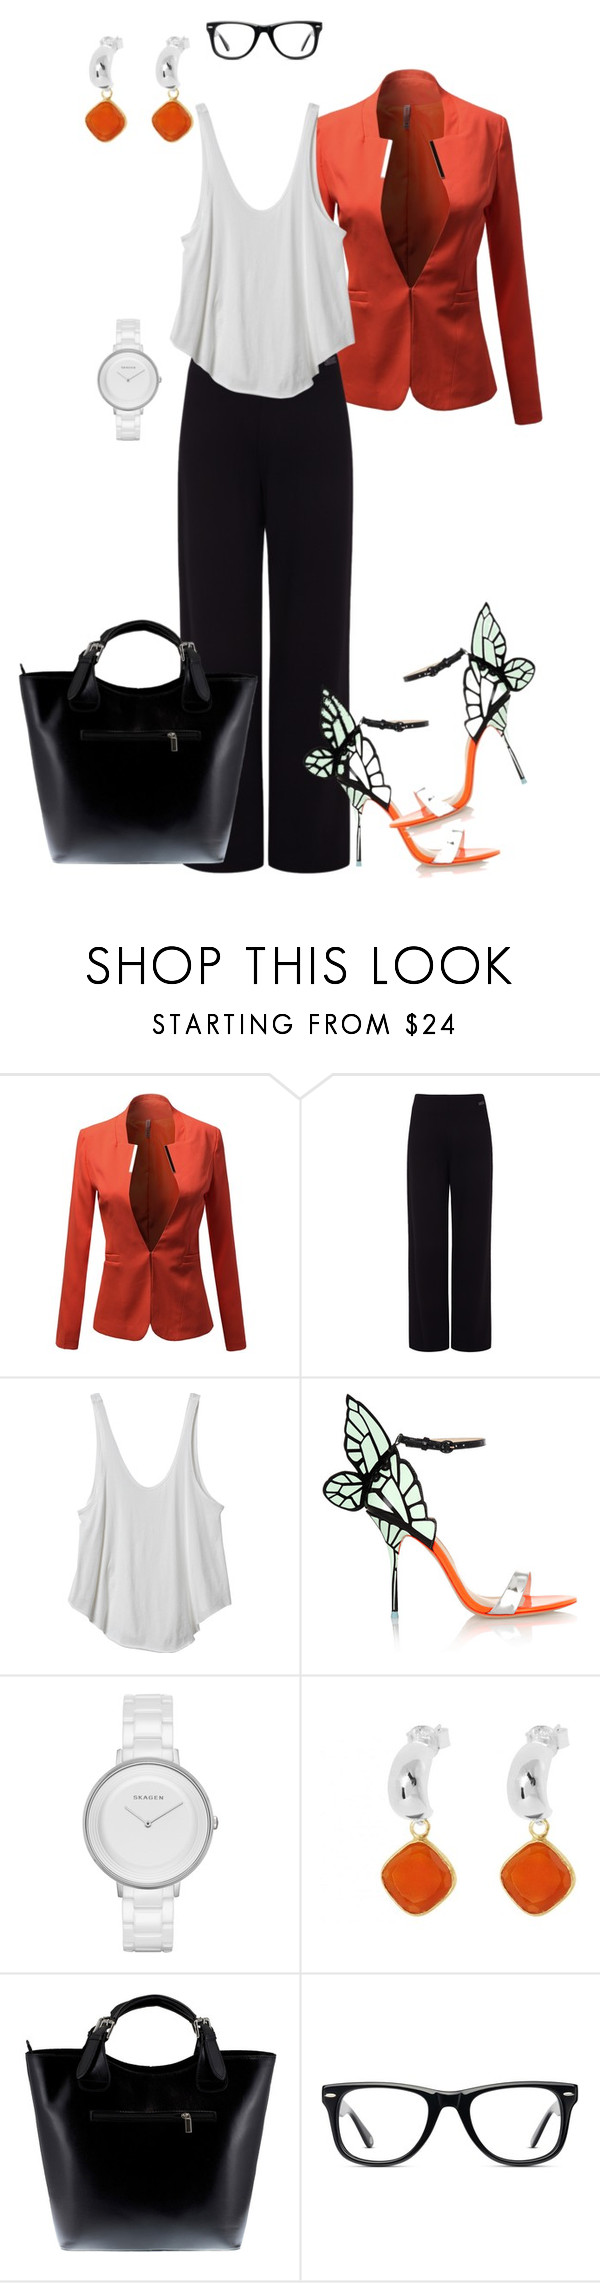 I'm D Boss by divalious-77 on Polyvore featuring RVCA, Pink Tartan, Sophia Webster, Massimo Castelli, Skagen and Muse